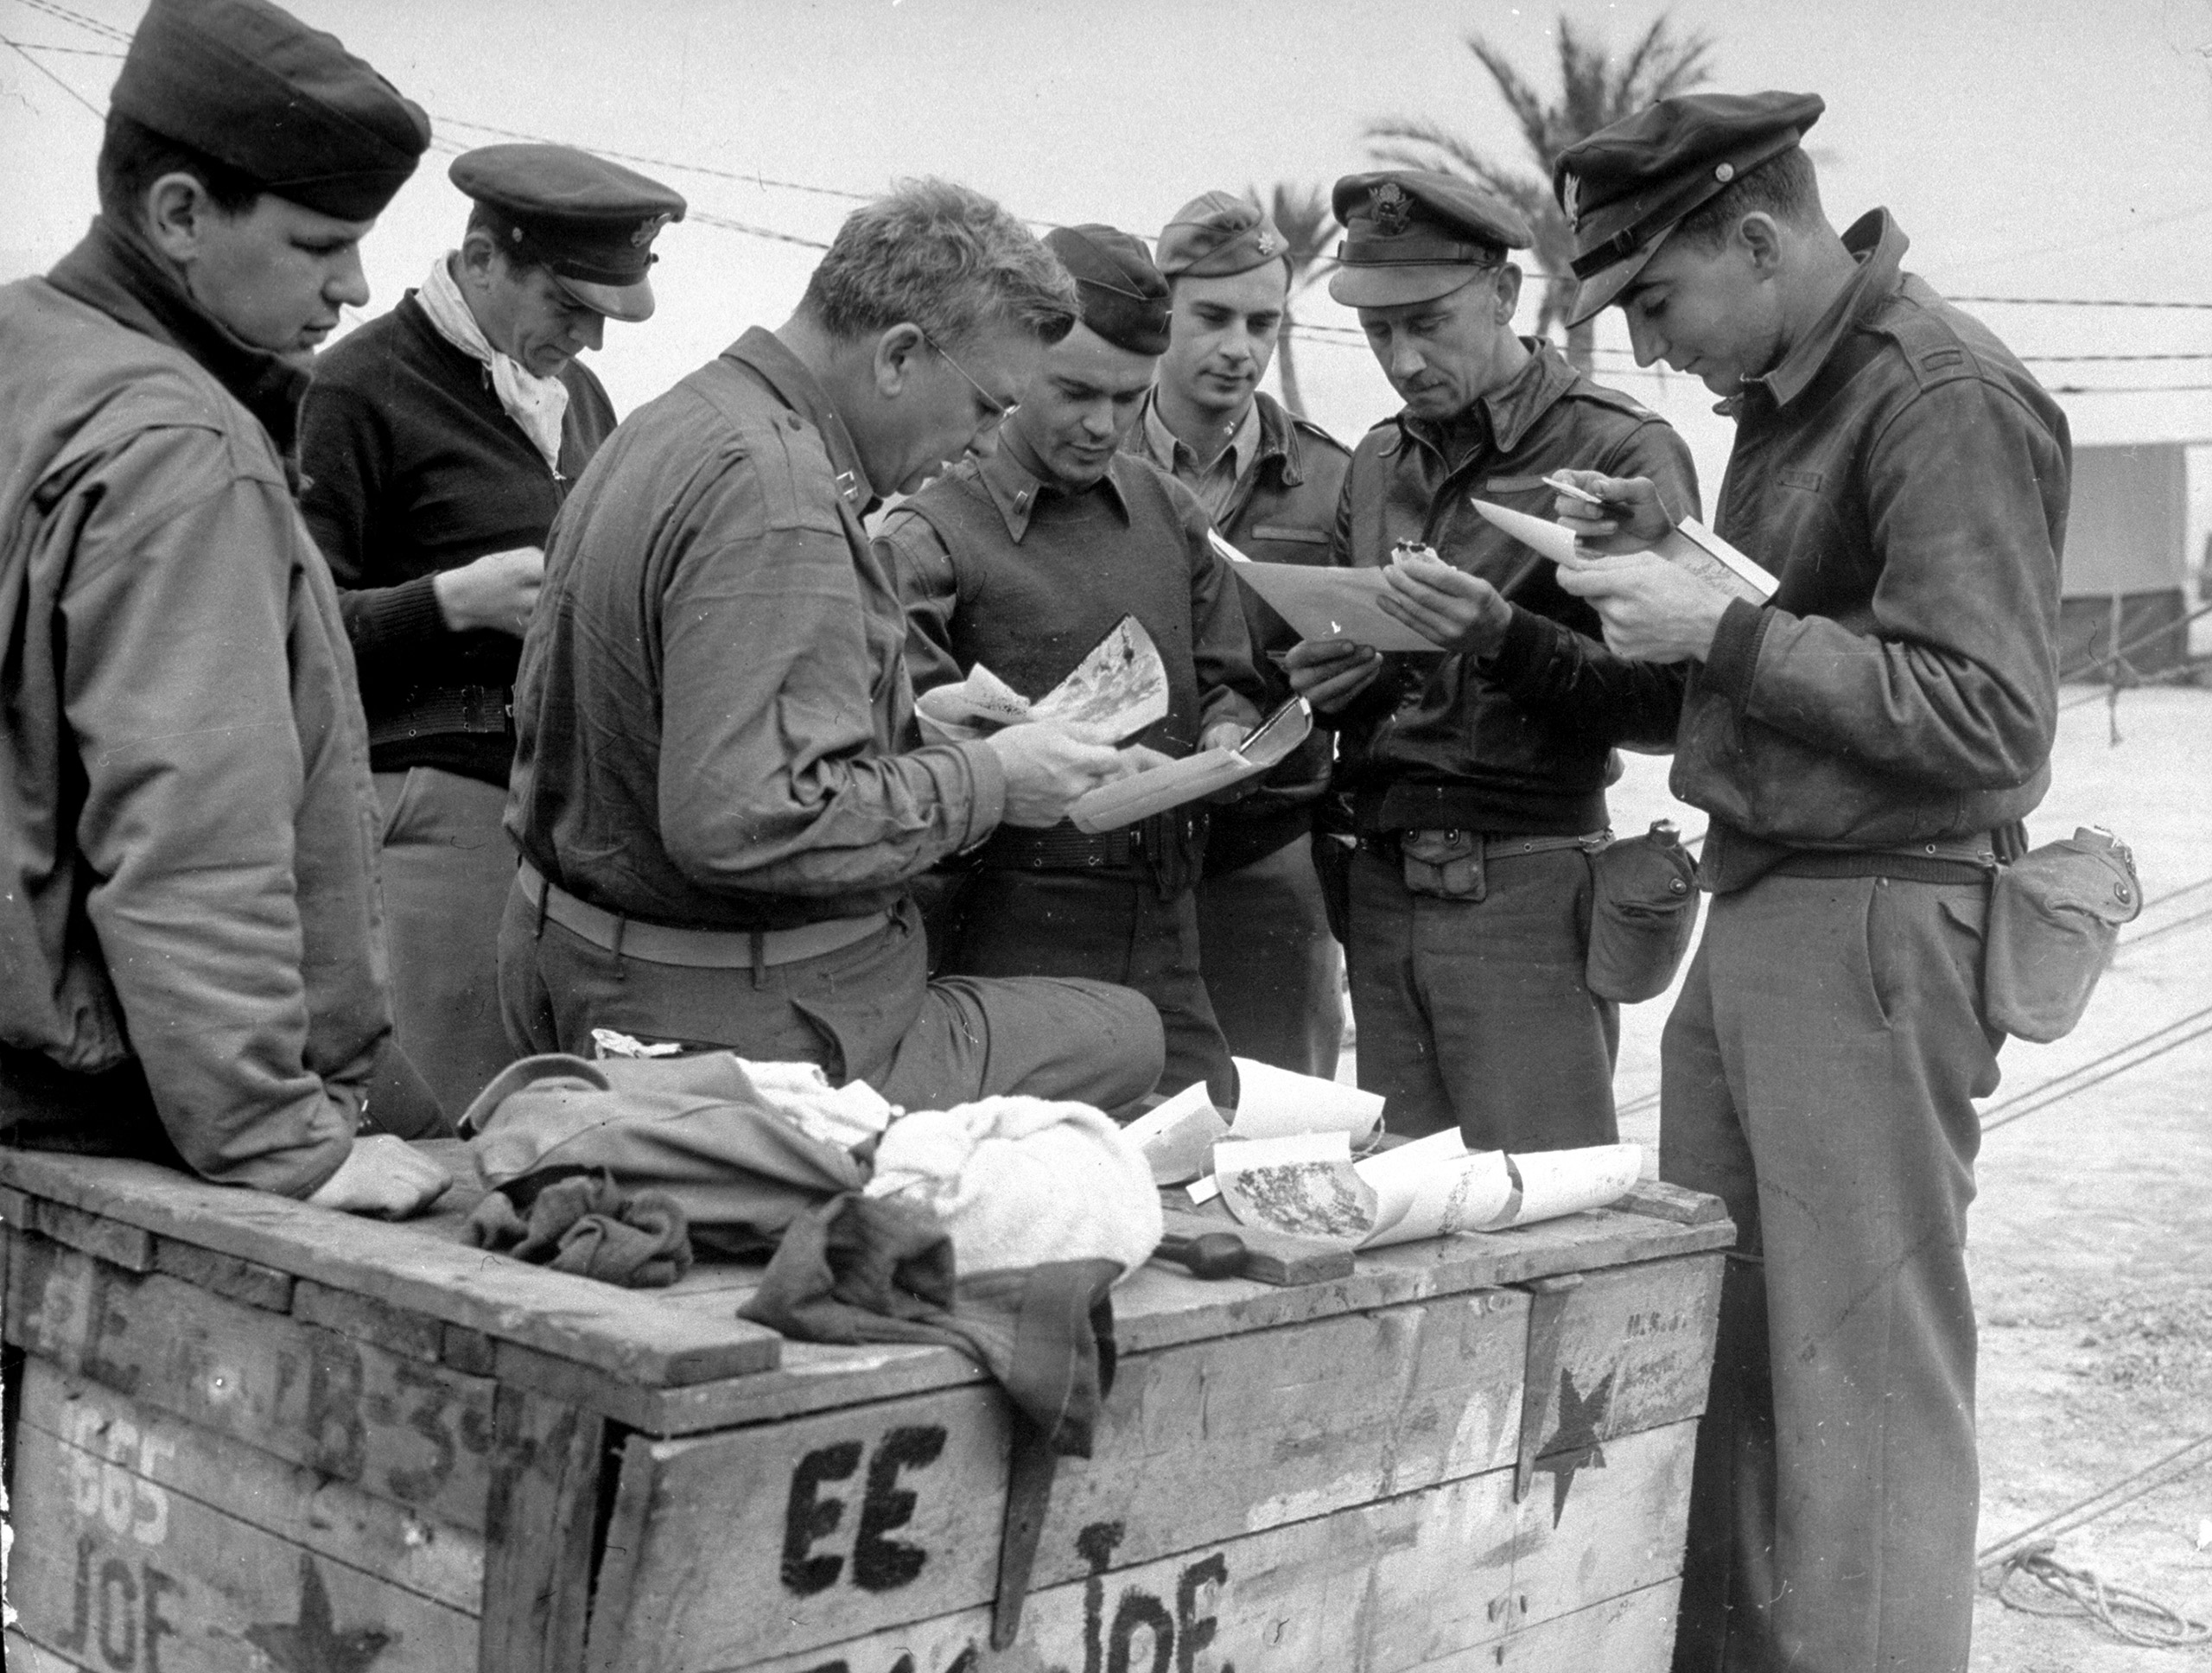 12th Air Force intelligence group officer Capt. Hazen Payette (3L) examing photographs of bombing raid with B-17 officers and crewmen including Lt. Carl Schultz (2L), Lt. Ed Weathers, Maj. Rudolph Flack, Maj. Joe Thomas (2R), at desert base during Allied North African campaign, WWII.